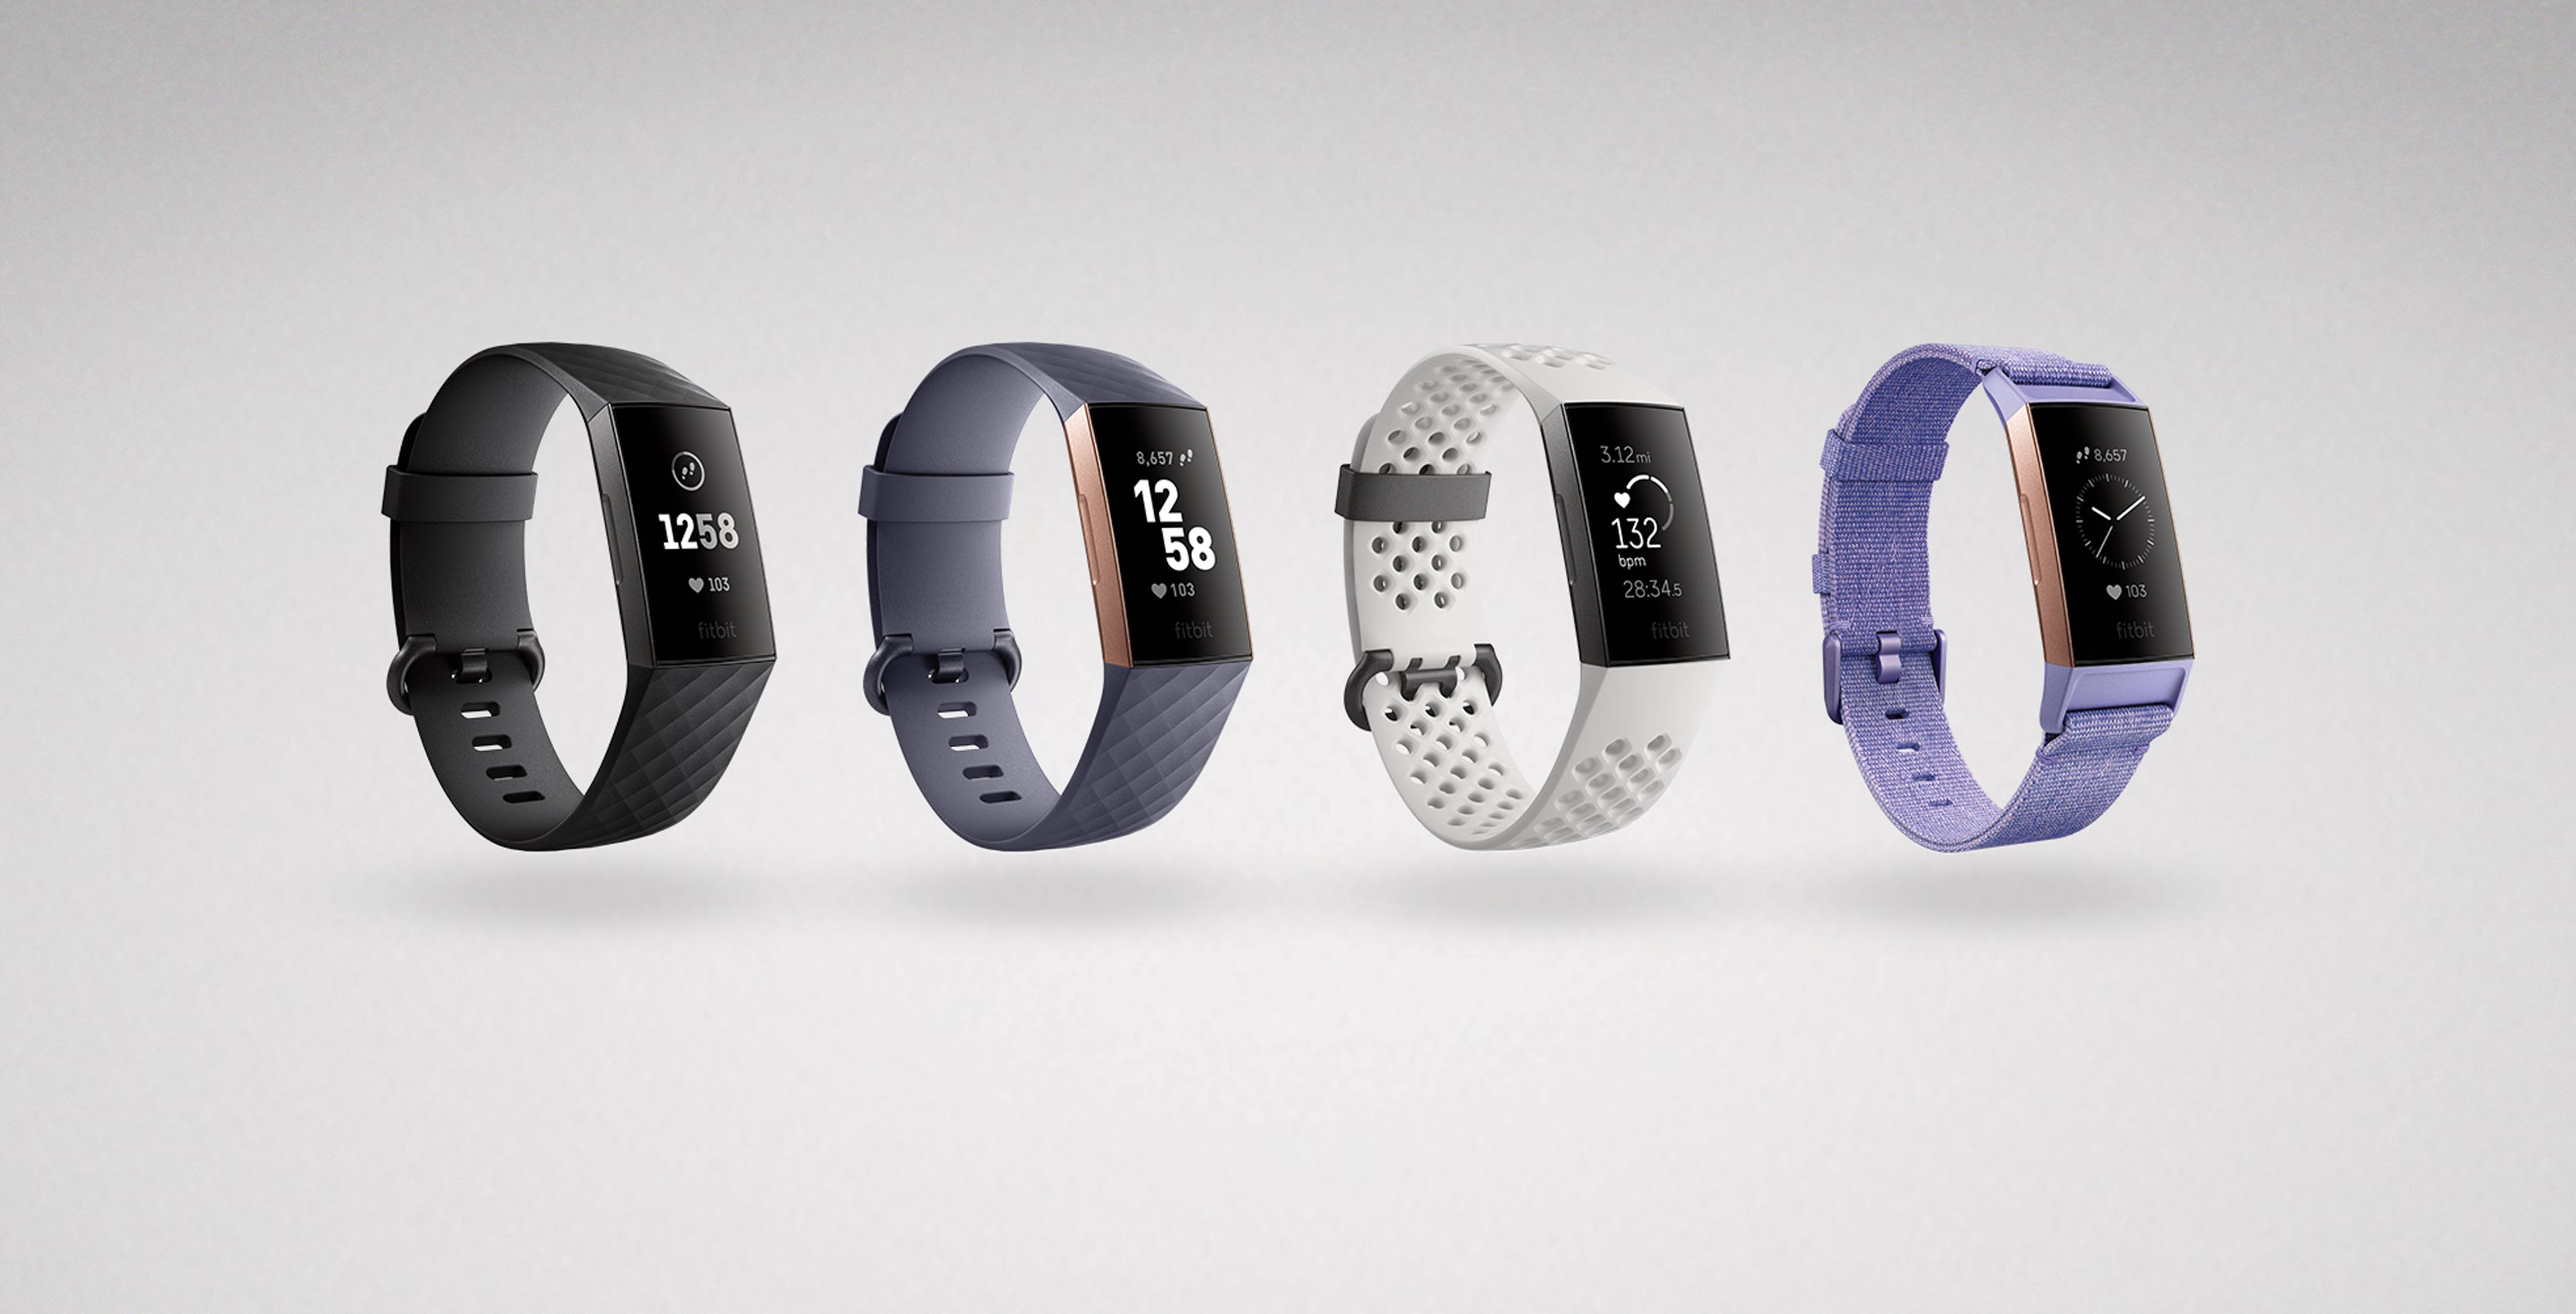 Fitbit's new Charge 3 fitness tracker